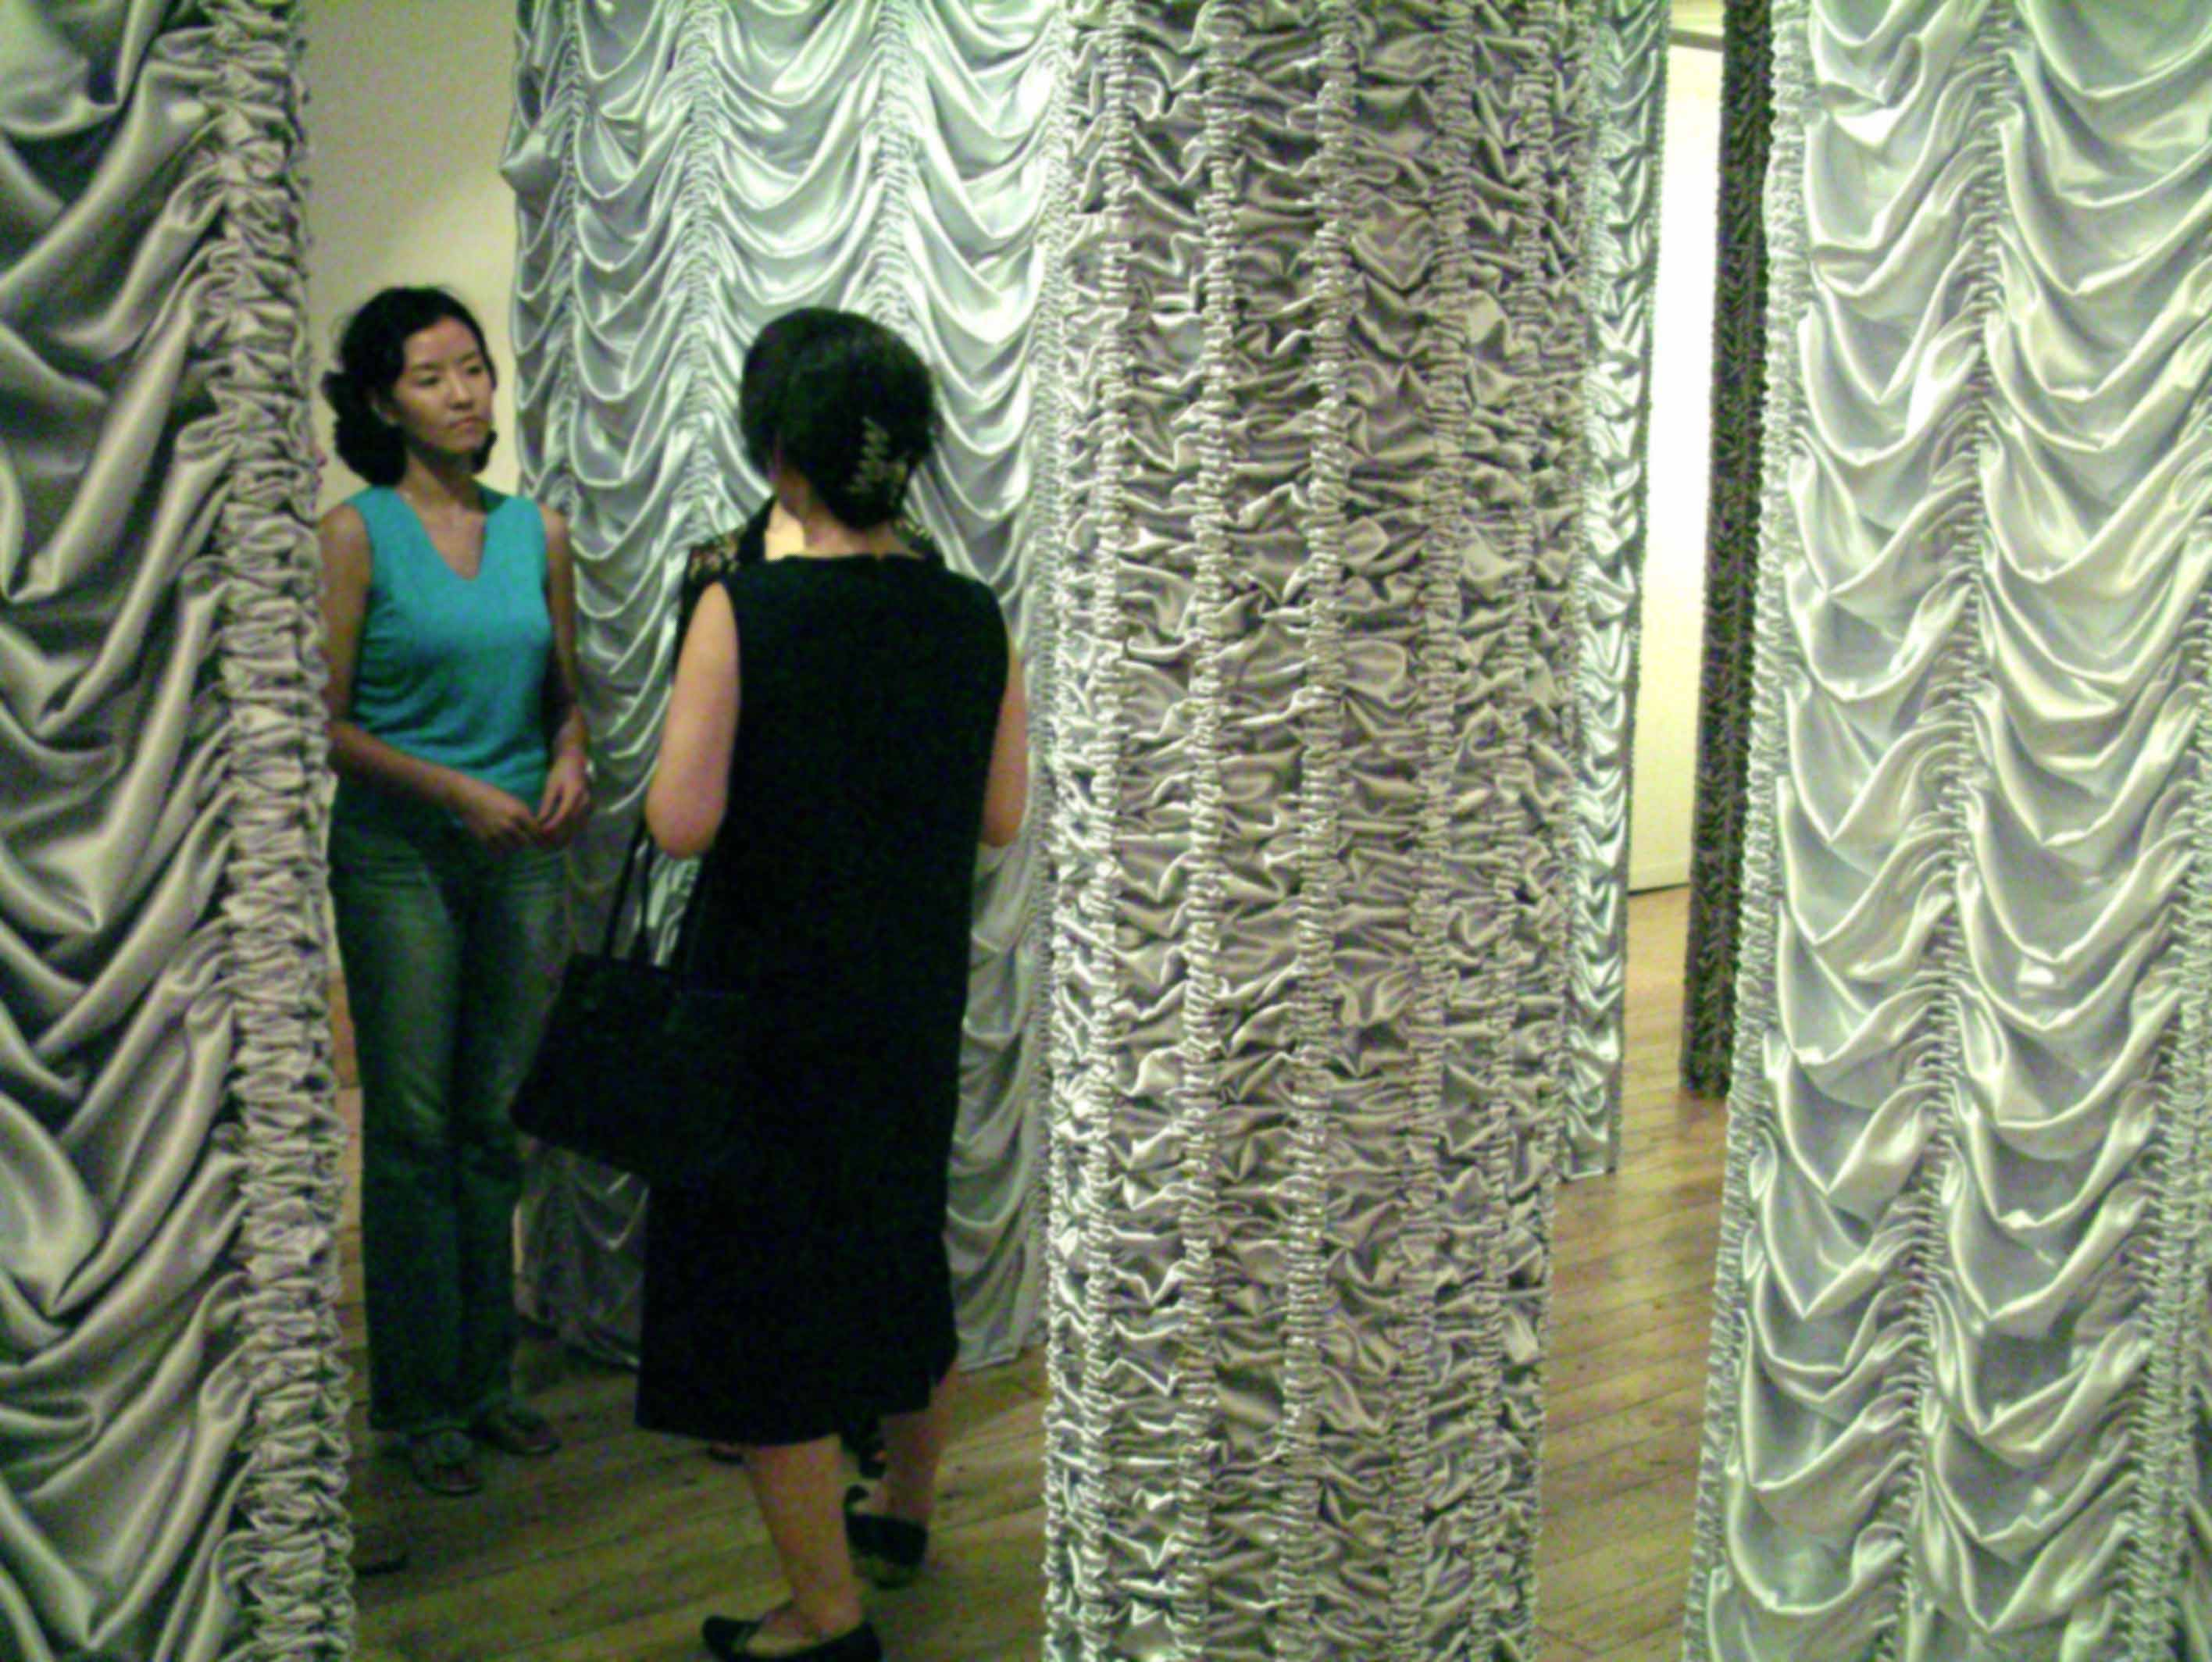 Young In Hong Solo Exhibition: The Pillars